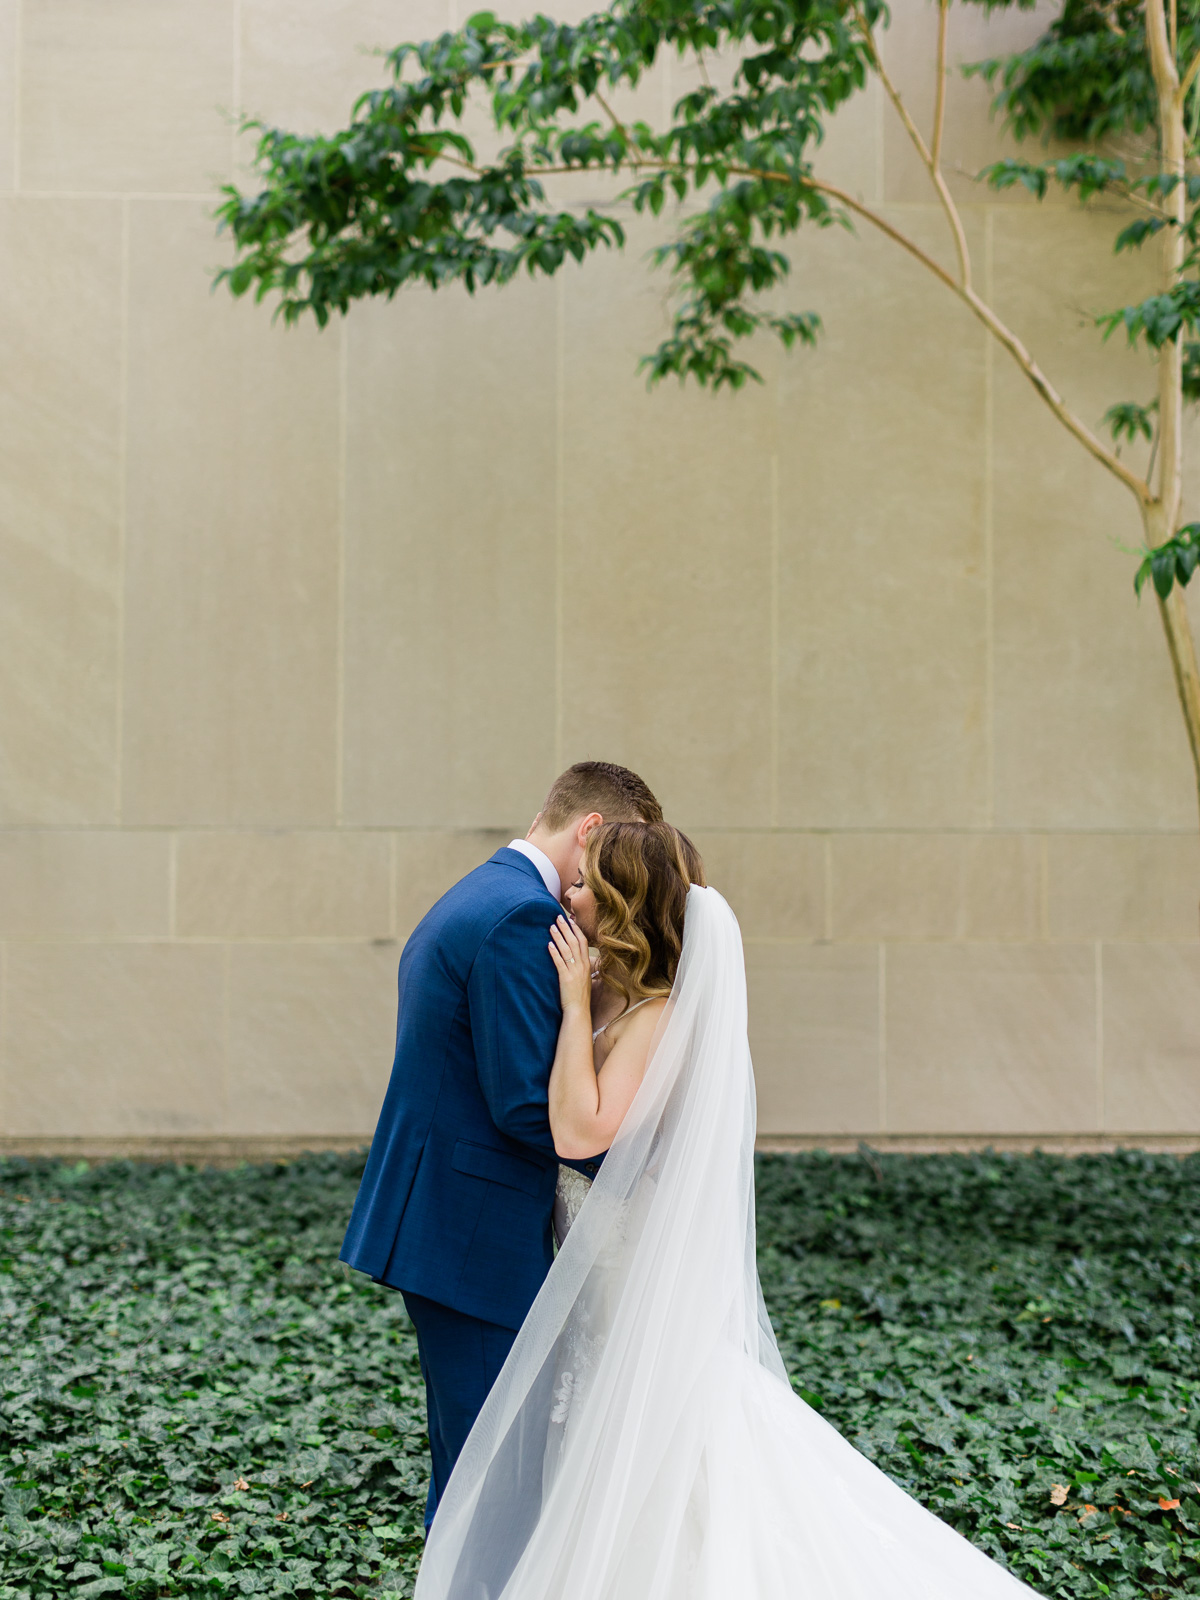 Romantic Summer Wedding at Whitehall in Cleveland-14.jpg